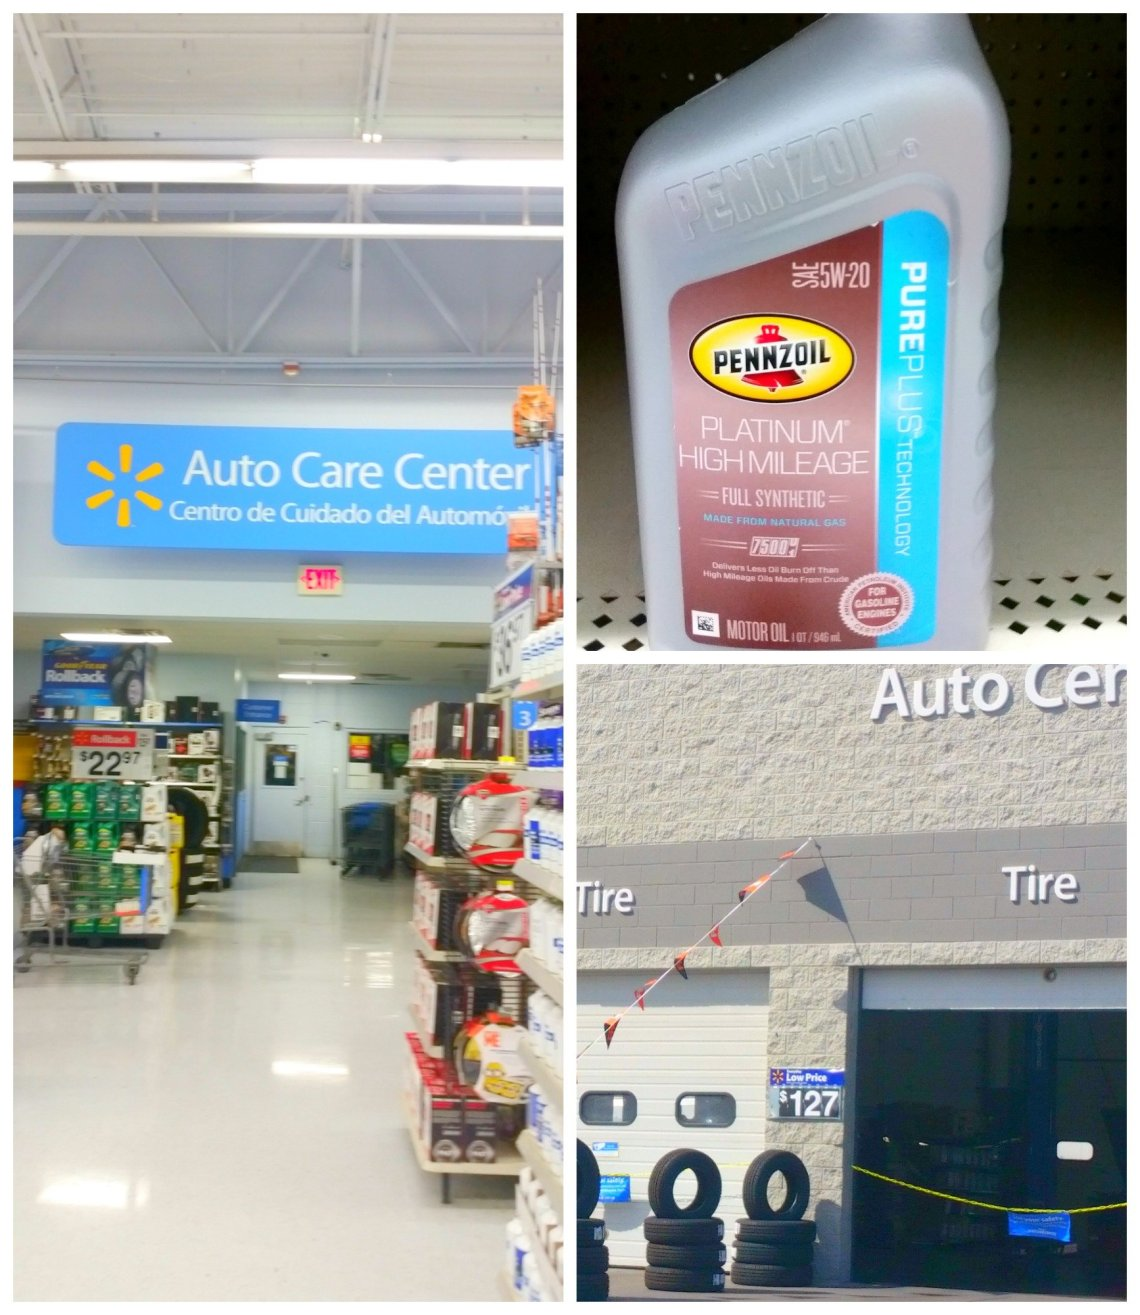 Make sure your car is road trip ready with Pennzoil at Walmart #RoadTripOil [ad]